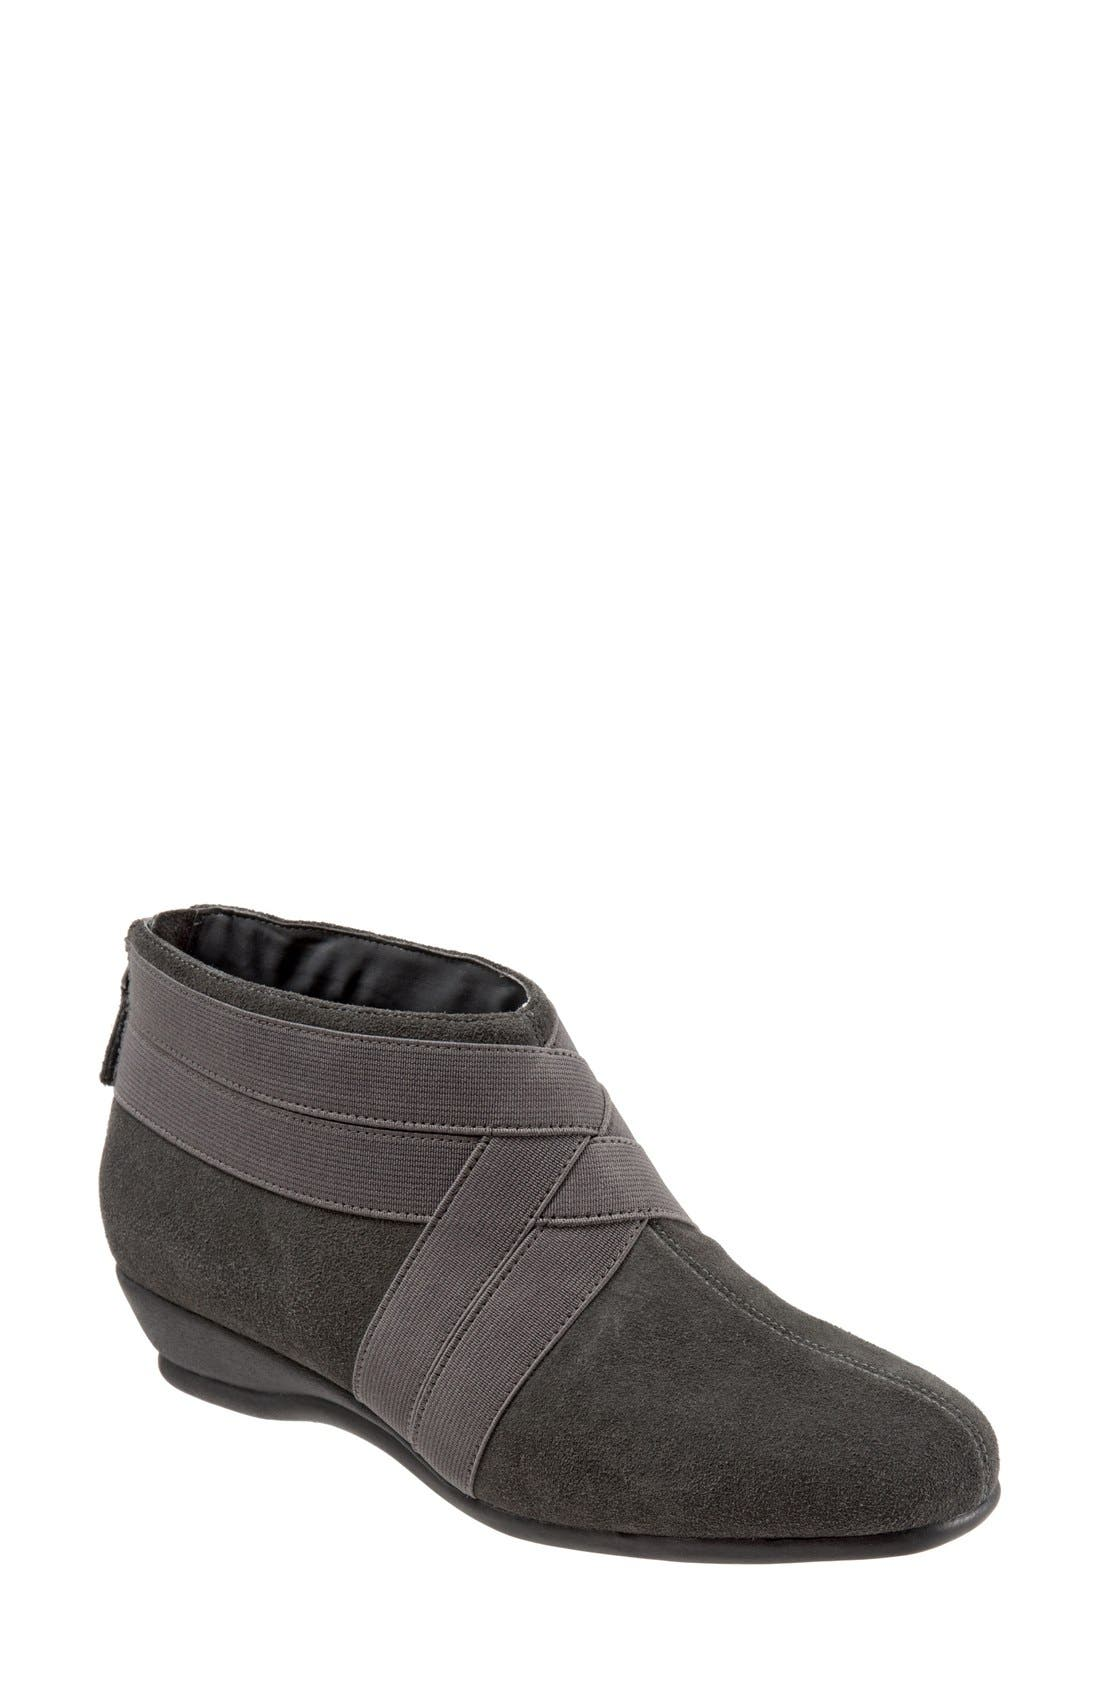 'Latch' Bootie,                         Main,                         color, 083